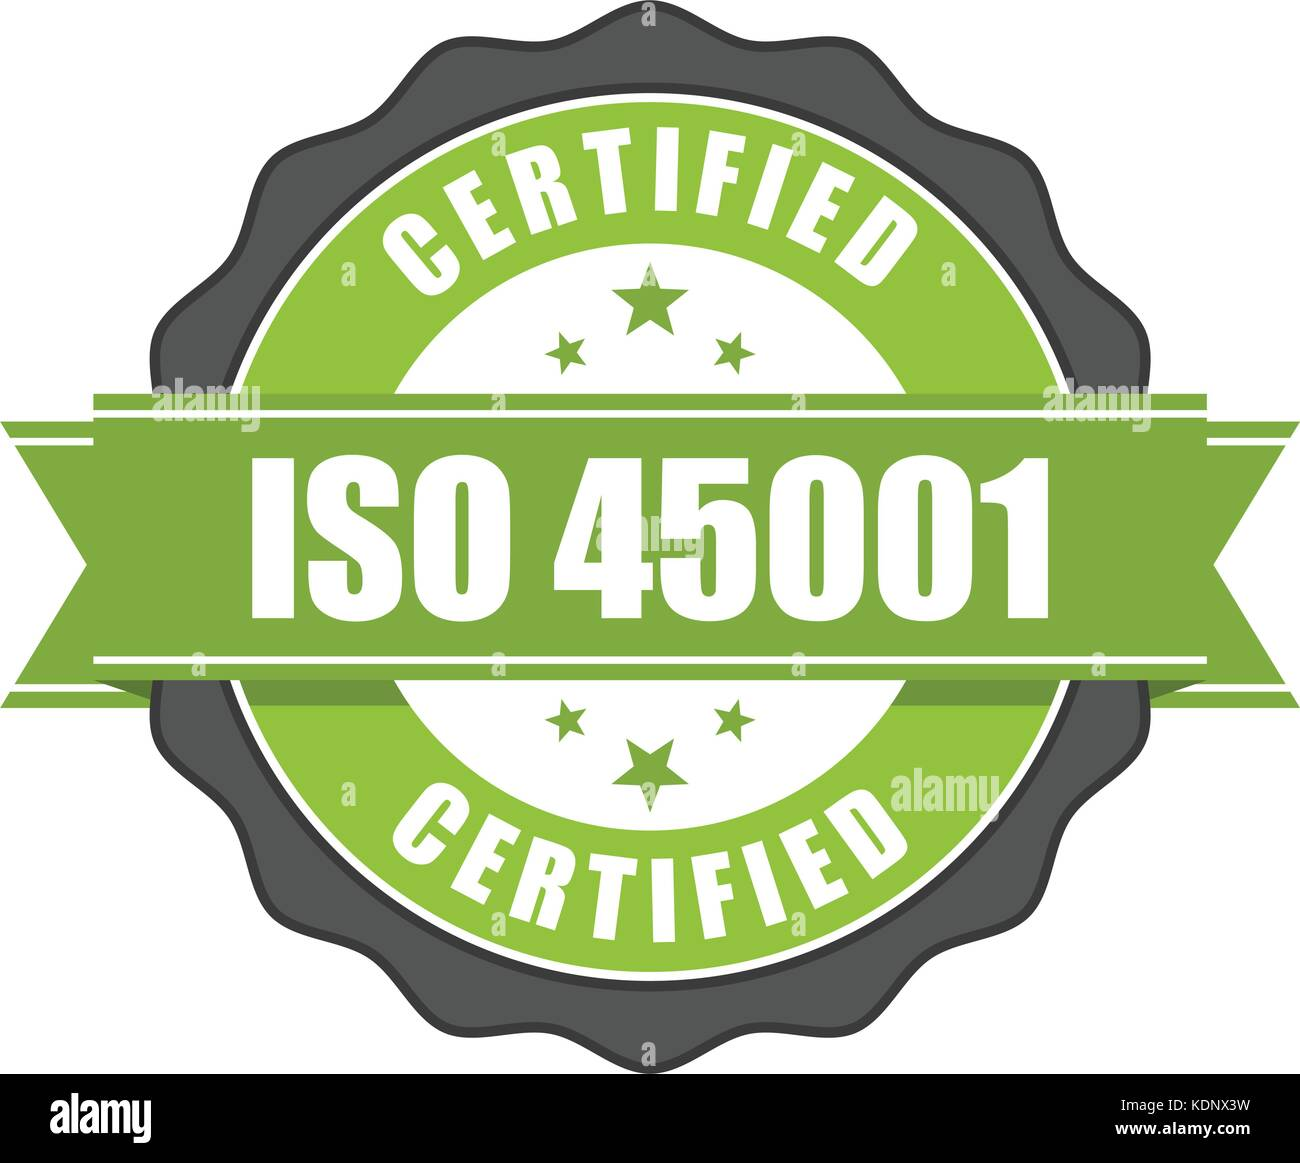 Iso 45001 standard certificate badge health and safety stock iso 45001 standard certificate badge health and safety 1betcityfo Gallery